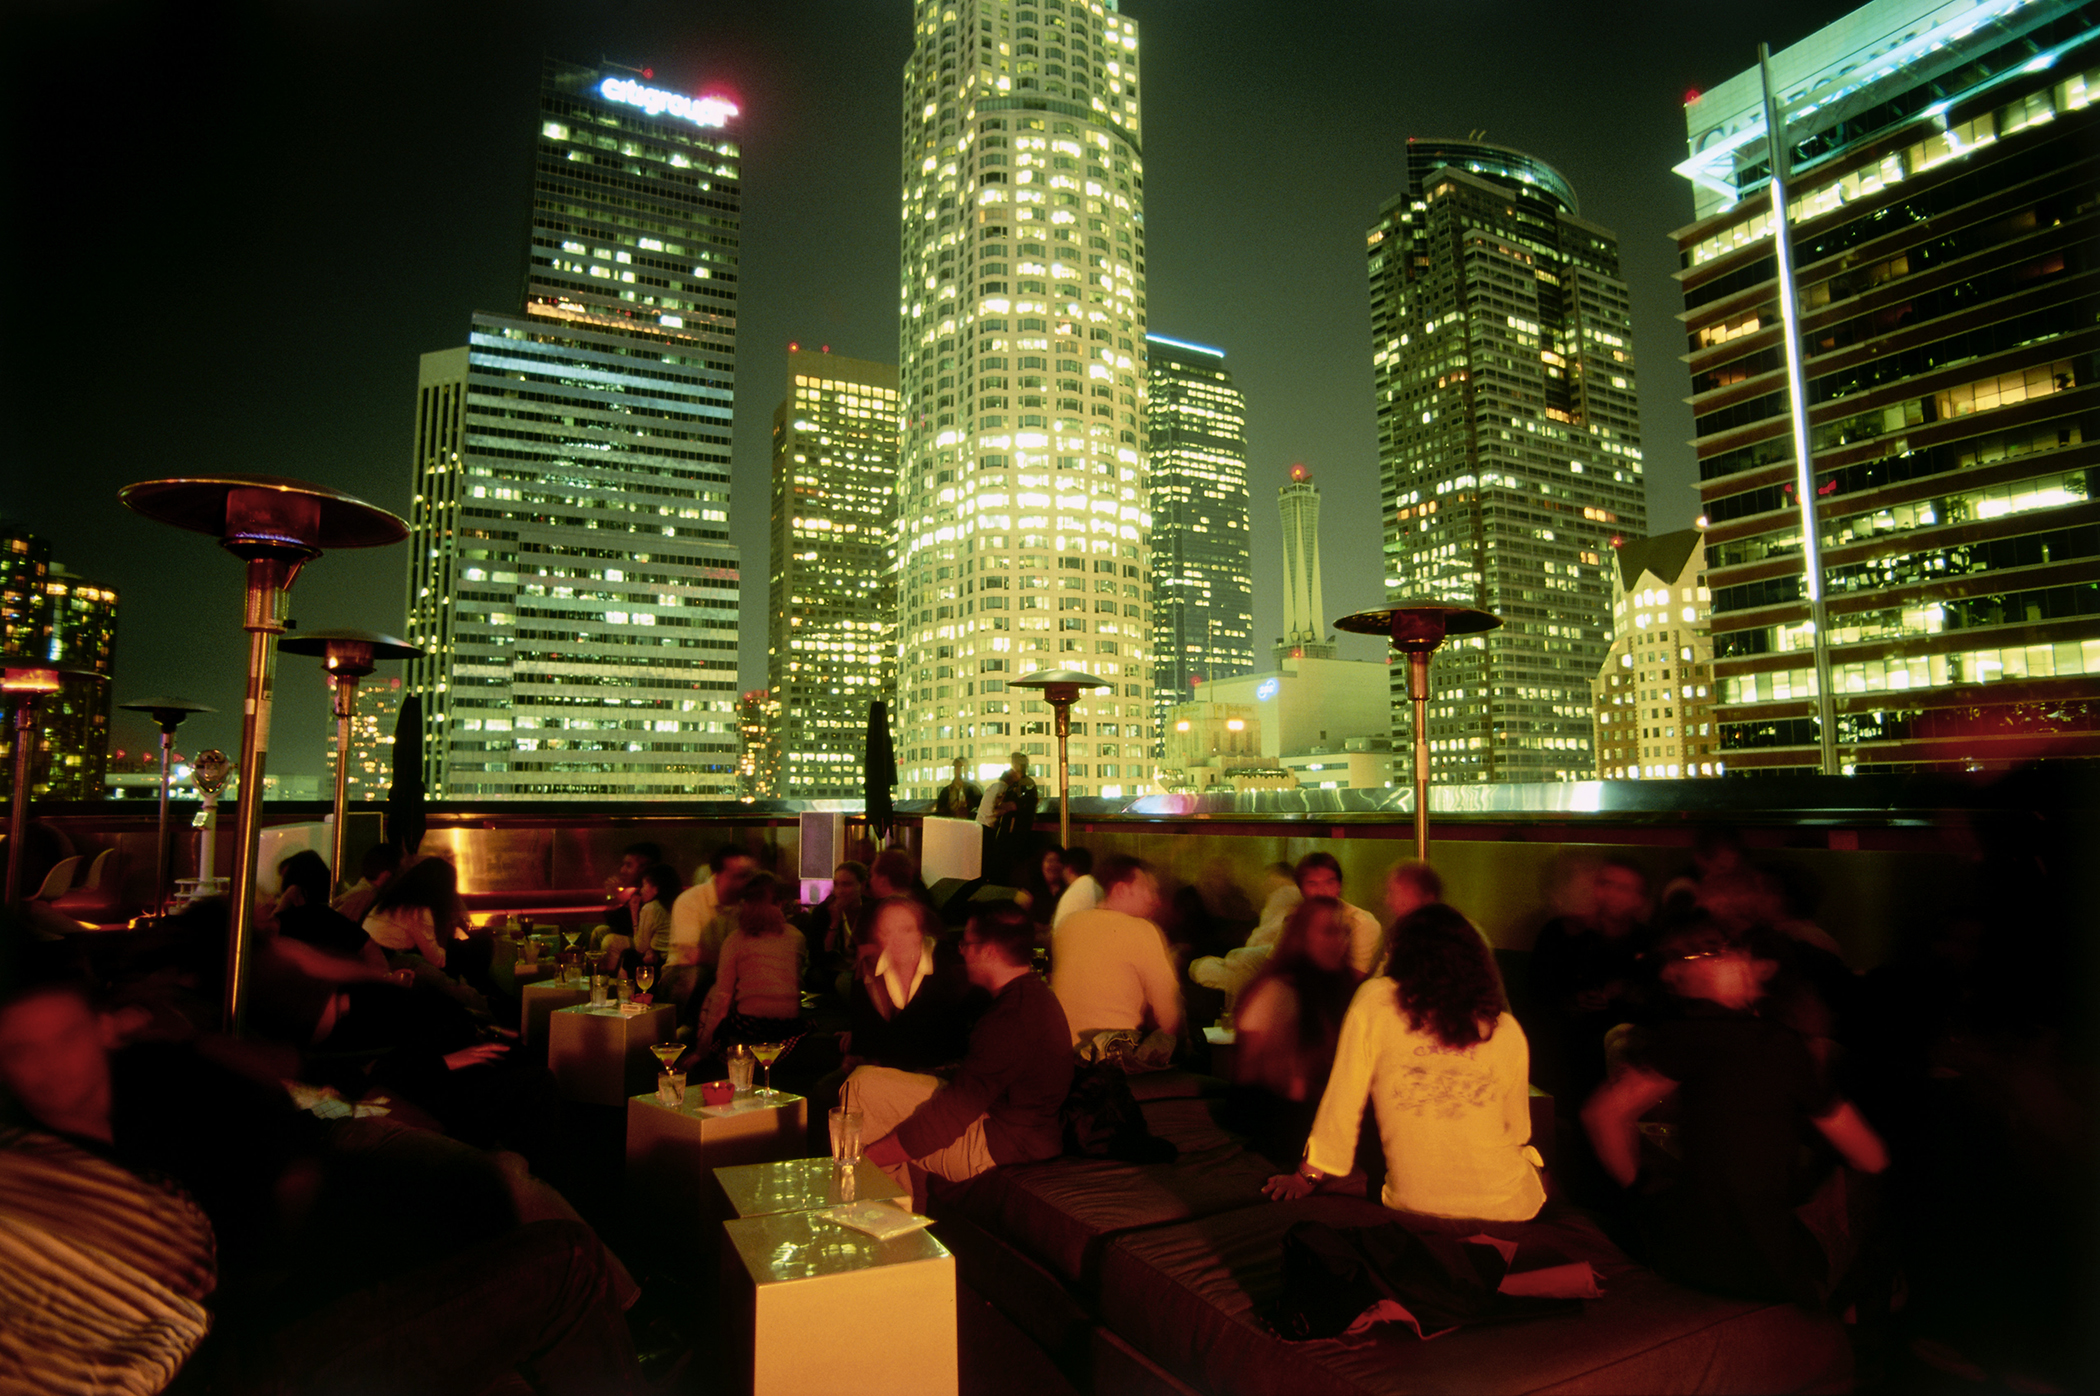 <strong>3. Los Angeles:</strong>Looking to date a movie star? Not likely to happen. But in Los Angeles, taking a date to the movies is easy, given that the City of Angels has more theaters within 30 miles than most any place else in the country.